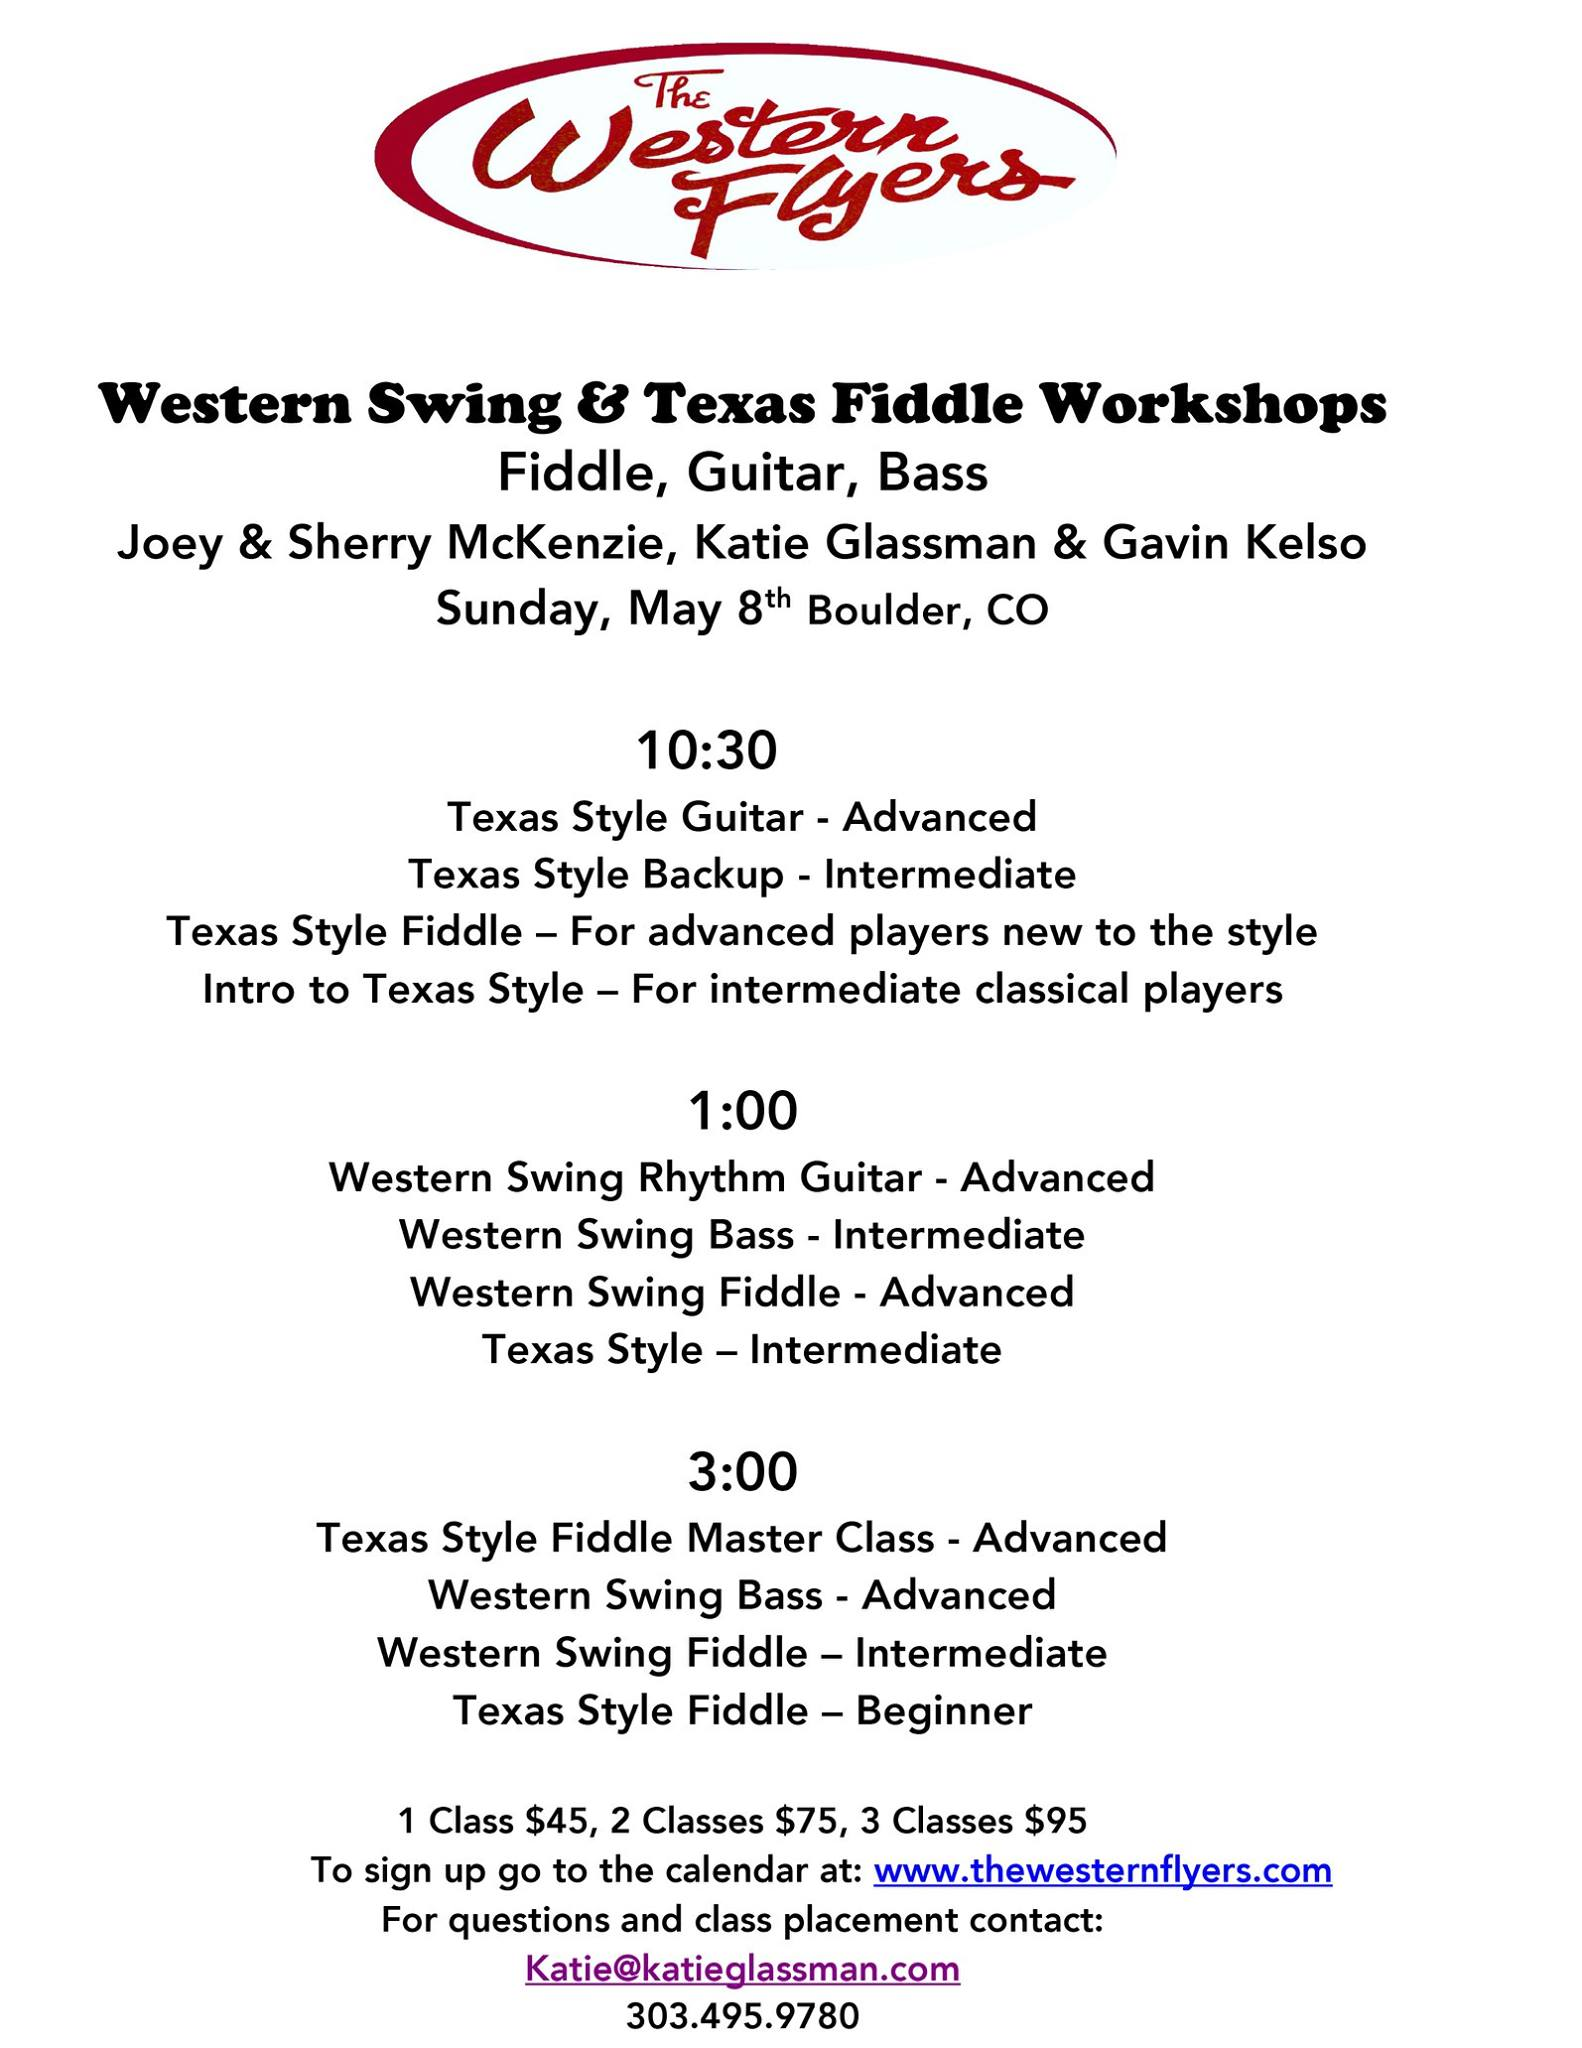 Western Swing & Texas Fiddle Workshops - Colorado Old Time